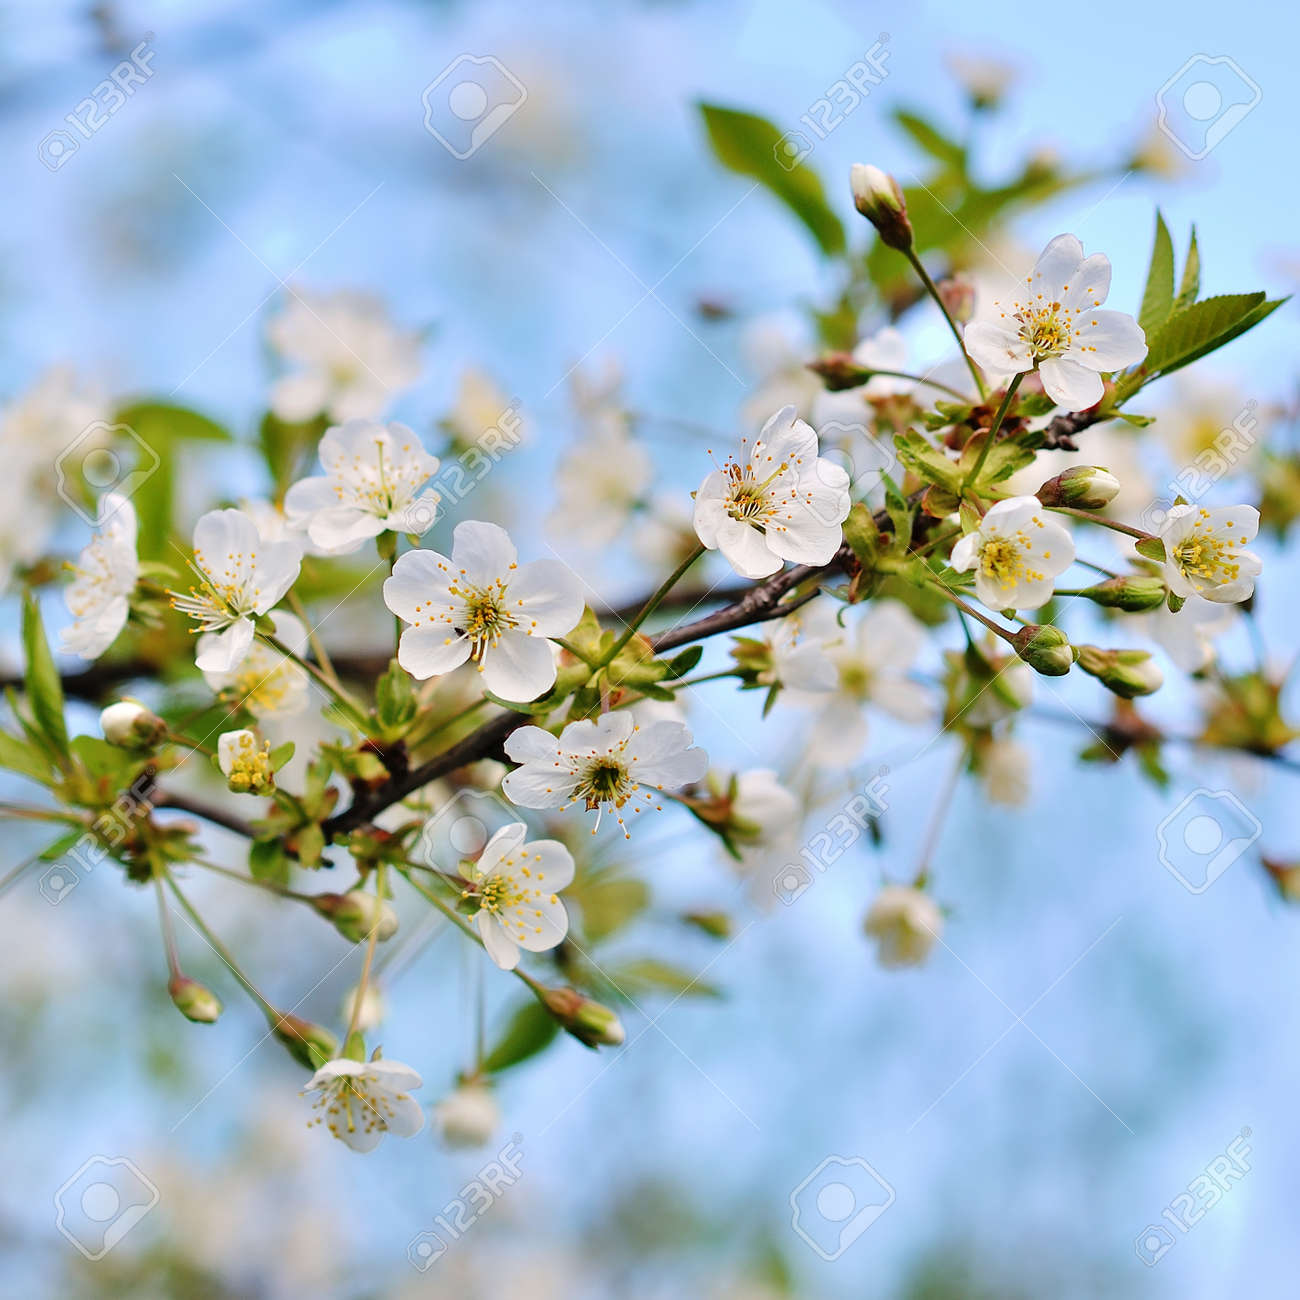 Jolly Background From Branches Michigan Flowering Trees Flowers